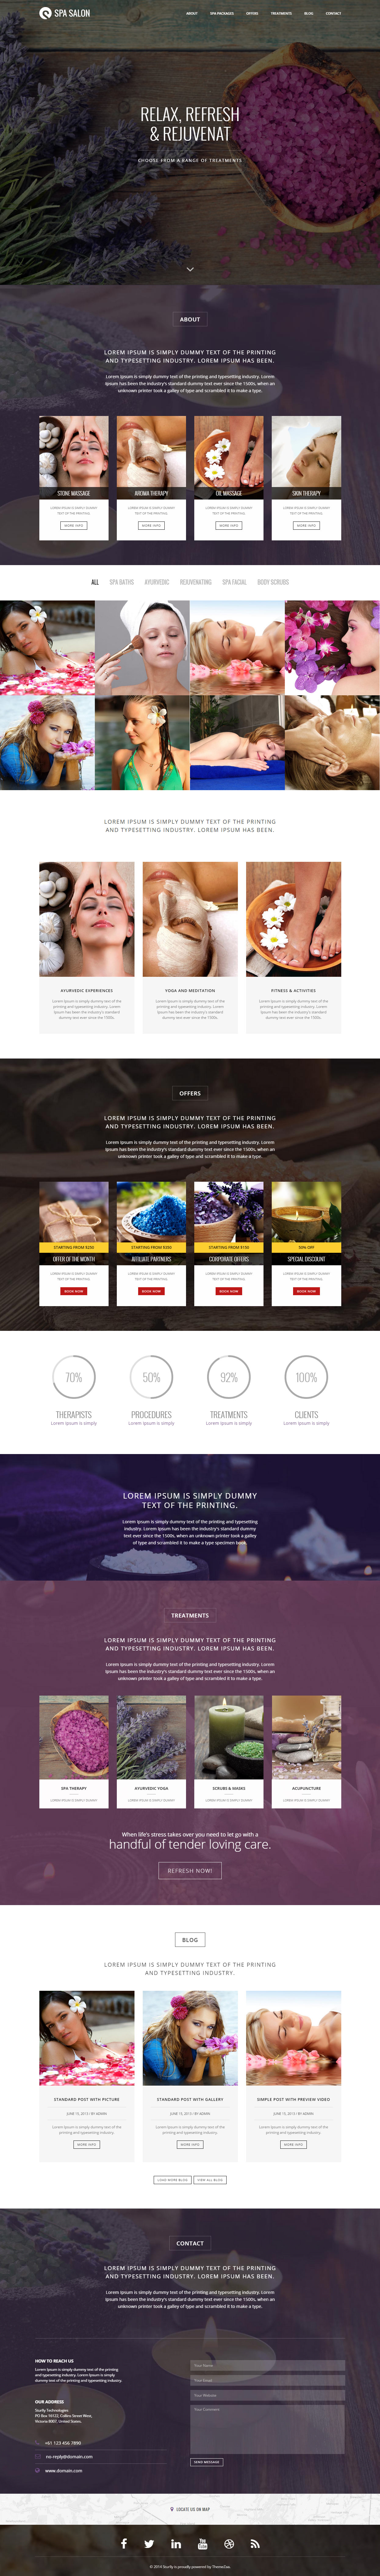 15+ Best HTML Spa and Beauty Templates 2017 - Responsive Miracle Beauty Home Designs Html on joy home design, dark home design, cute asian home design, solo home design, pop culture home design, latest trends home design, golden ratio home design, magazines home design, baby home design, construction home design, men home design, barbie home design, camp home design, security home design, black home design, solace home design, most popular home design, design home design, peaceful home design, female home design,